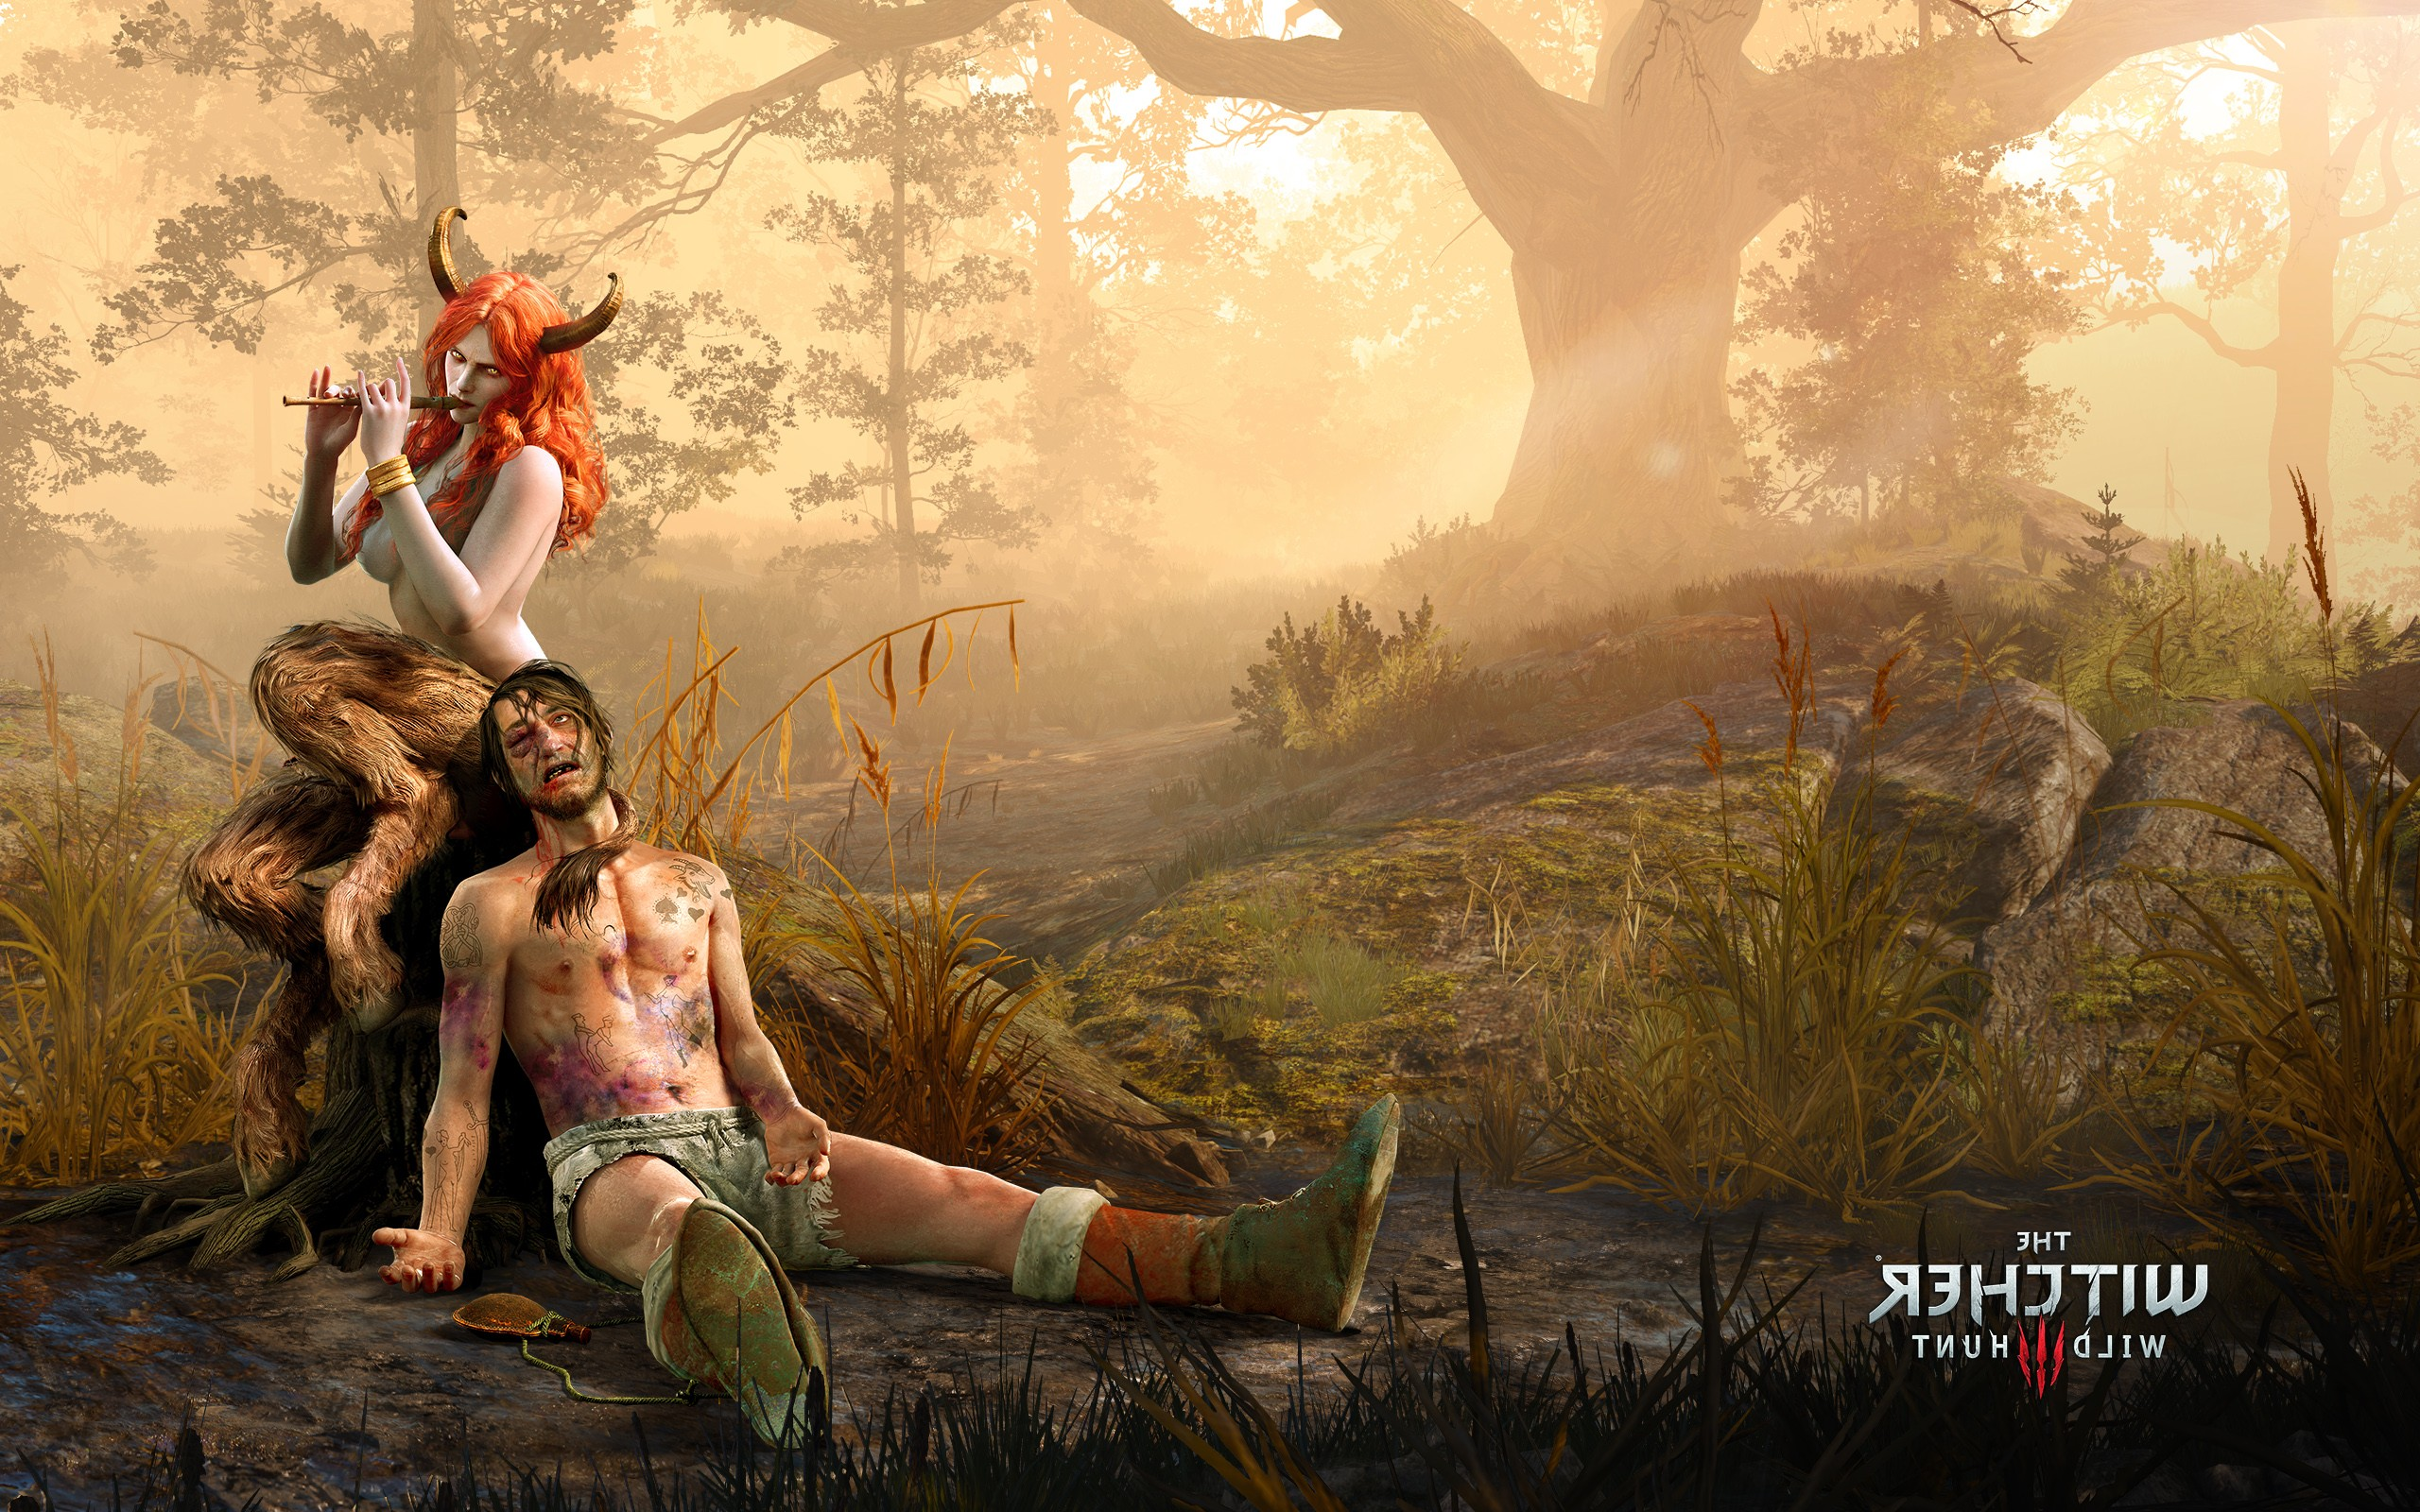 1920x1080 the witcher 3 wild hunt 2 laptop full hd 1080p - The witcher wallpaper 4k ...